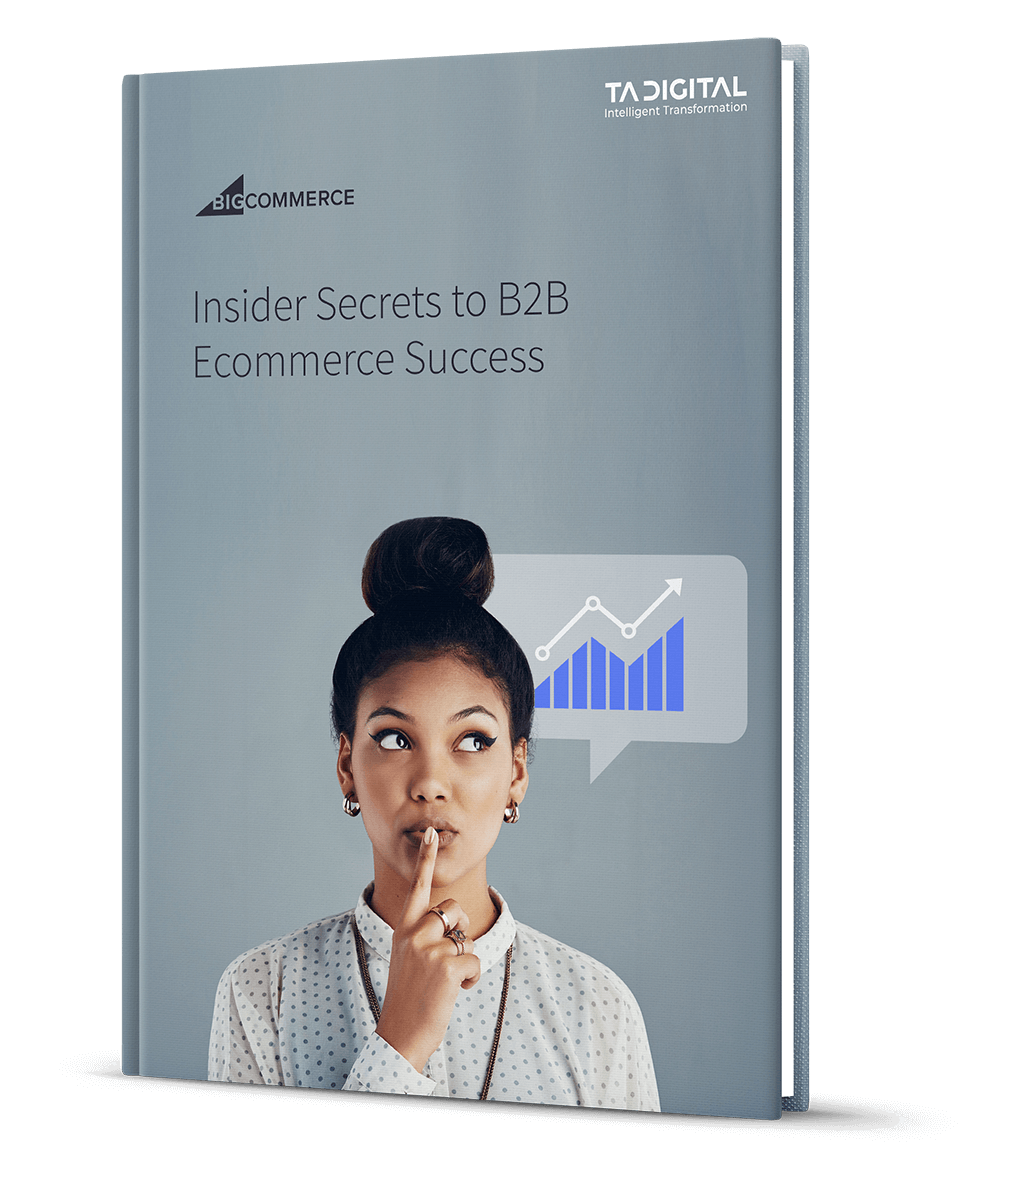 Insider Secrets to B2B Ecommerce Success